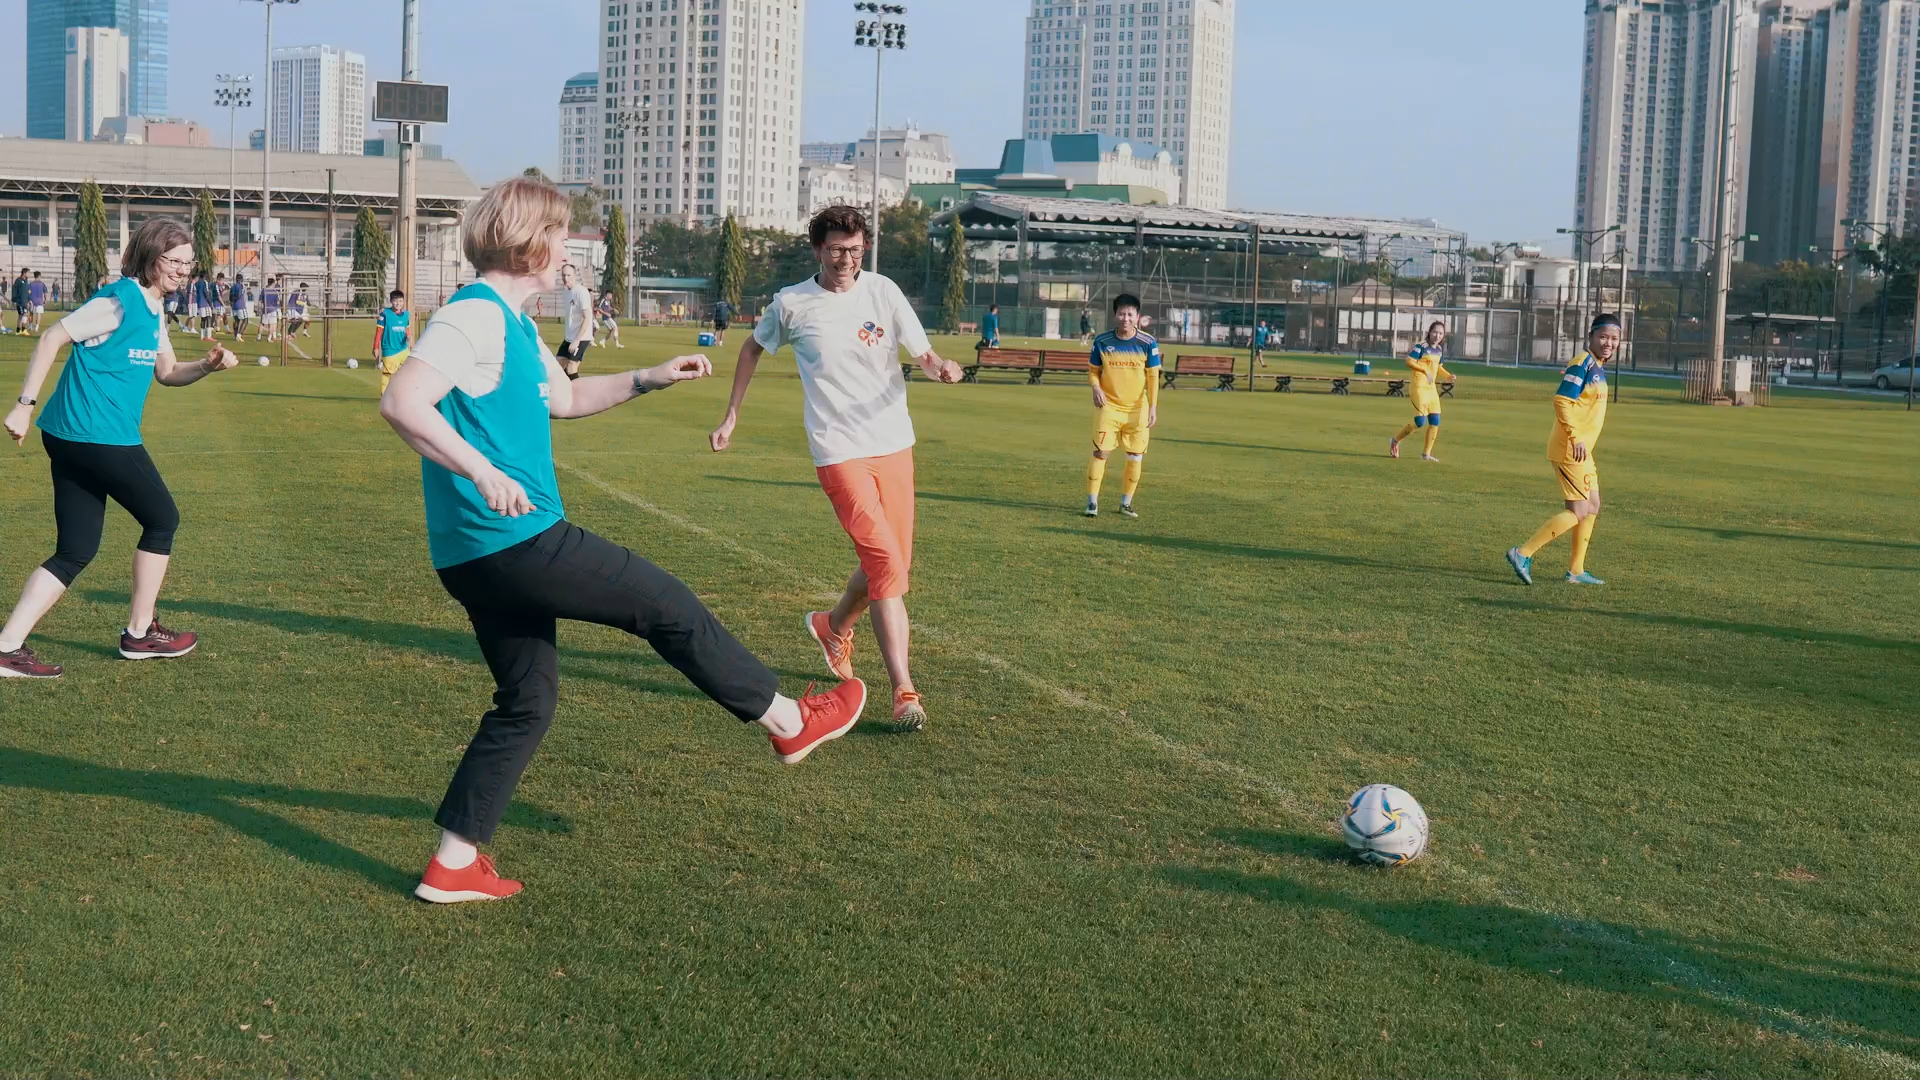 Ambassadors of New Zealand, Canada, Norway, and Switzerland play football with players of the women's national football team of Vietnam in this screengrab taken from a videoed Tet message sent to the media on January 20, 2020.